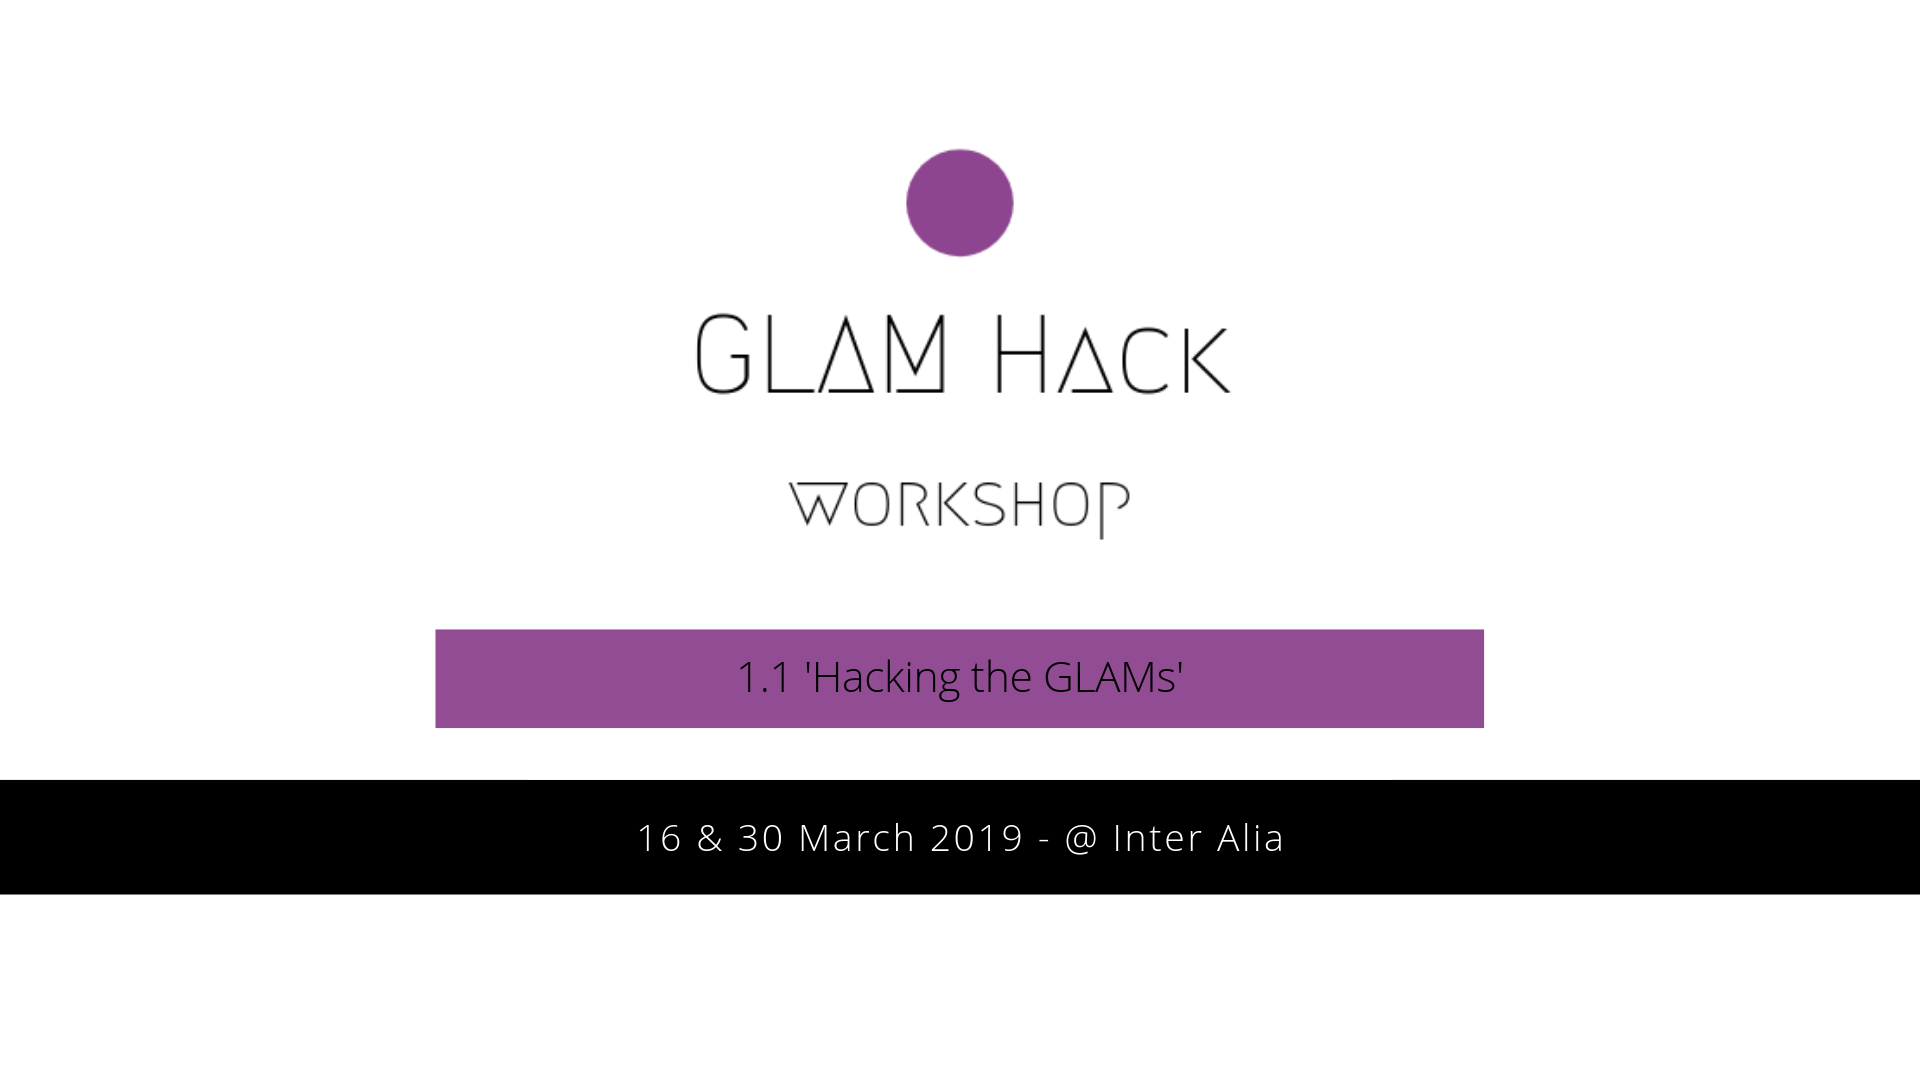 Workshop 1.1: 'Hacking the GLAMs'